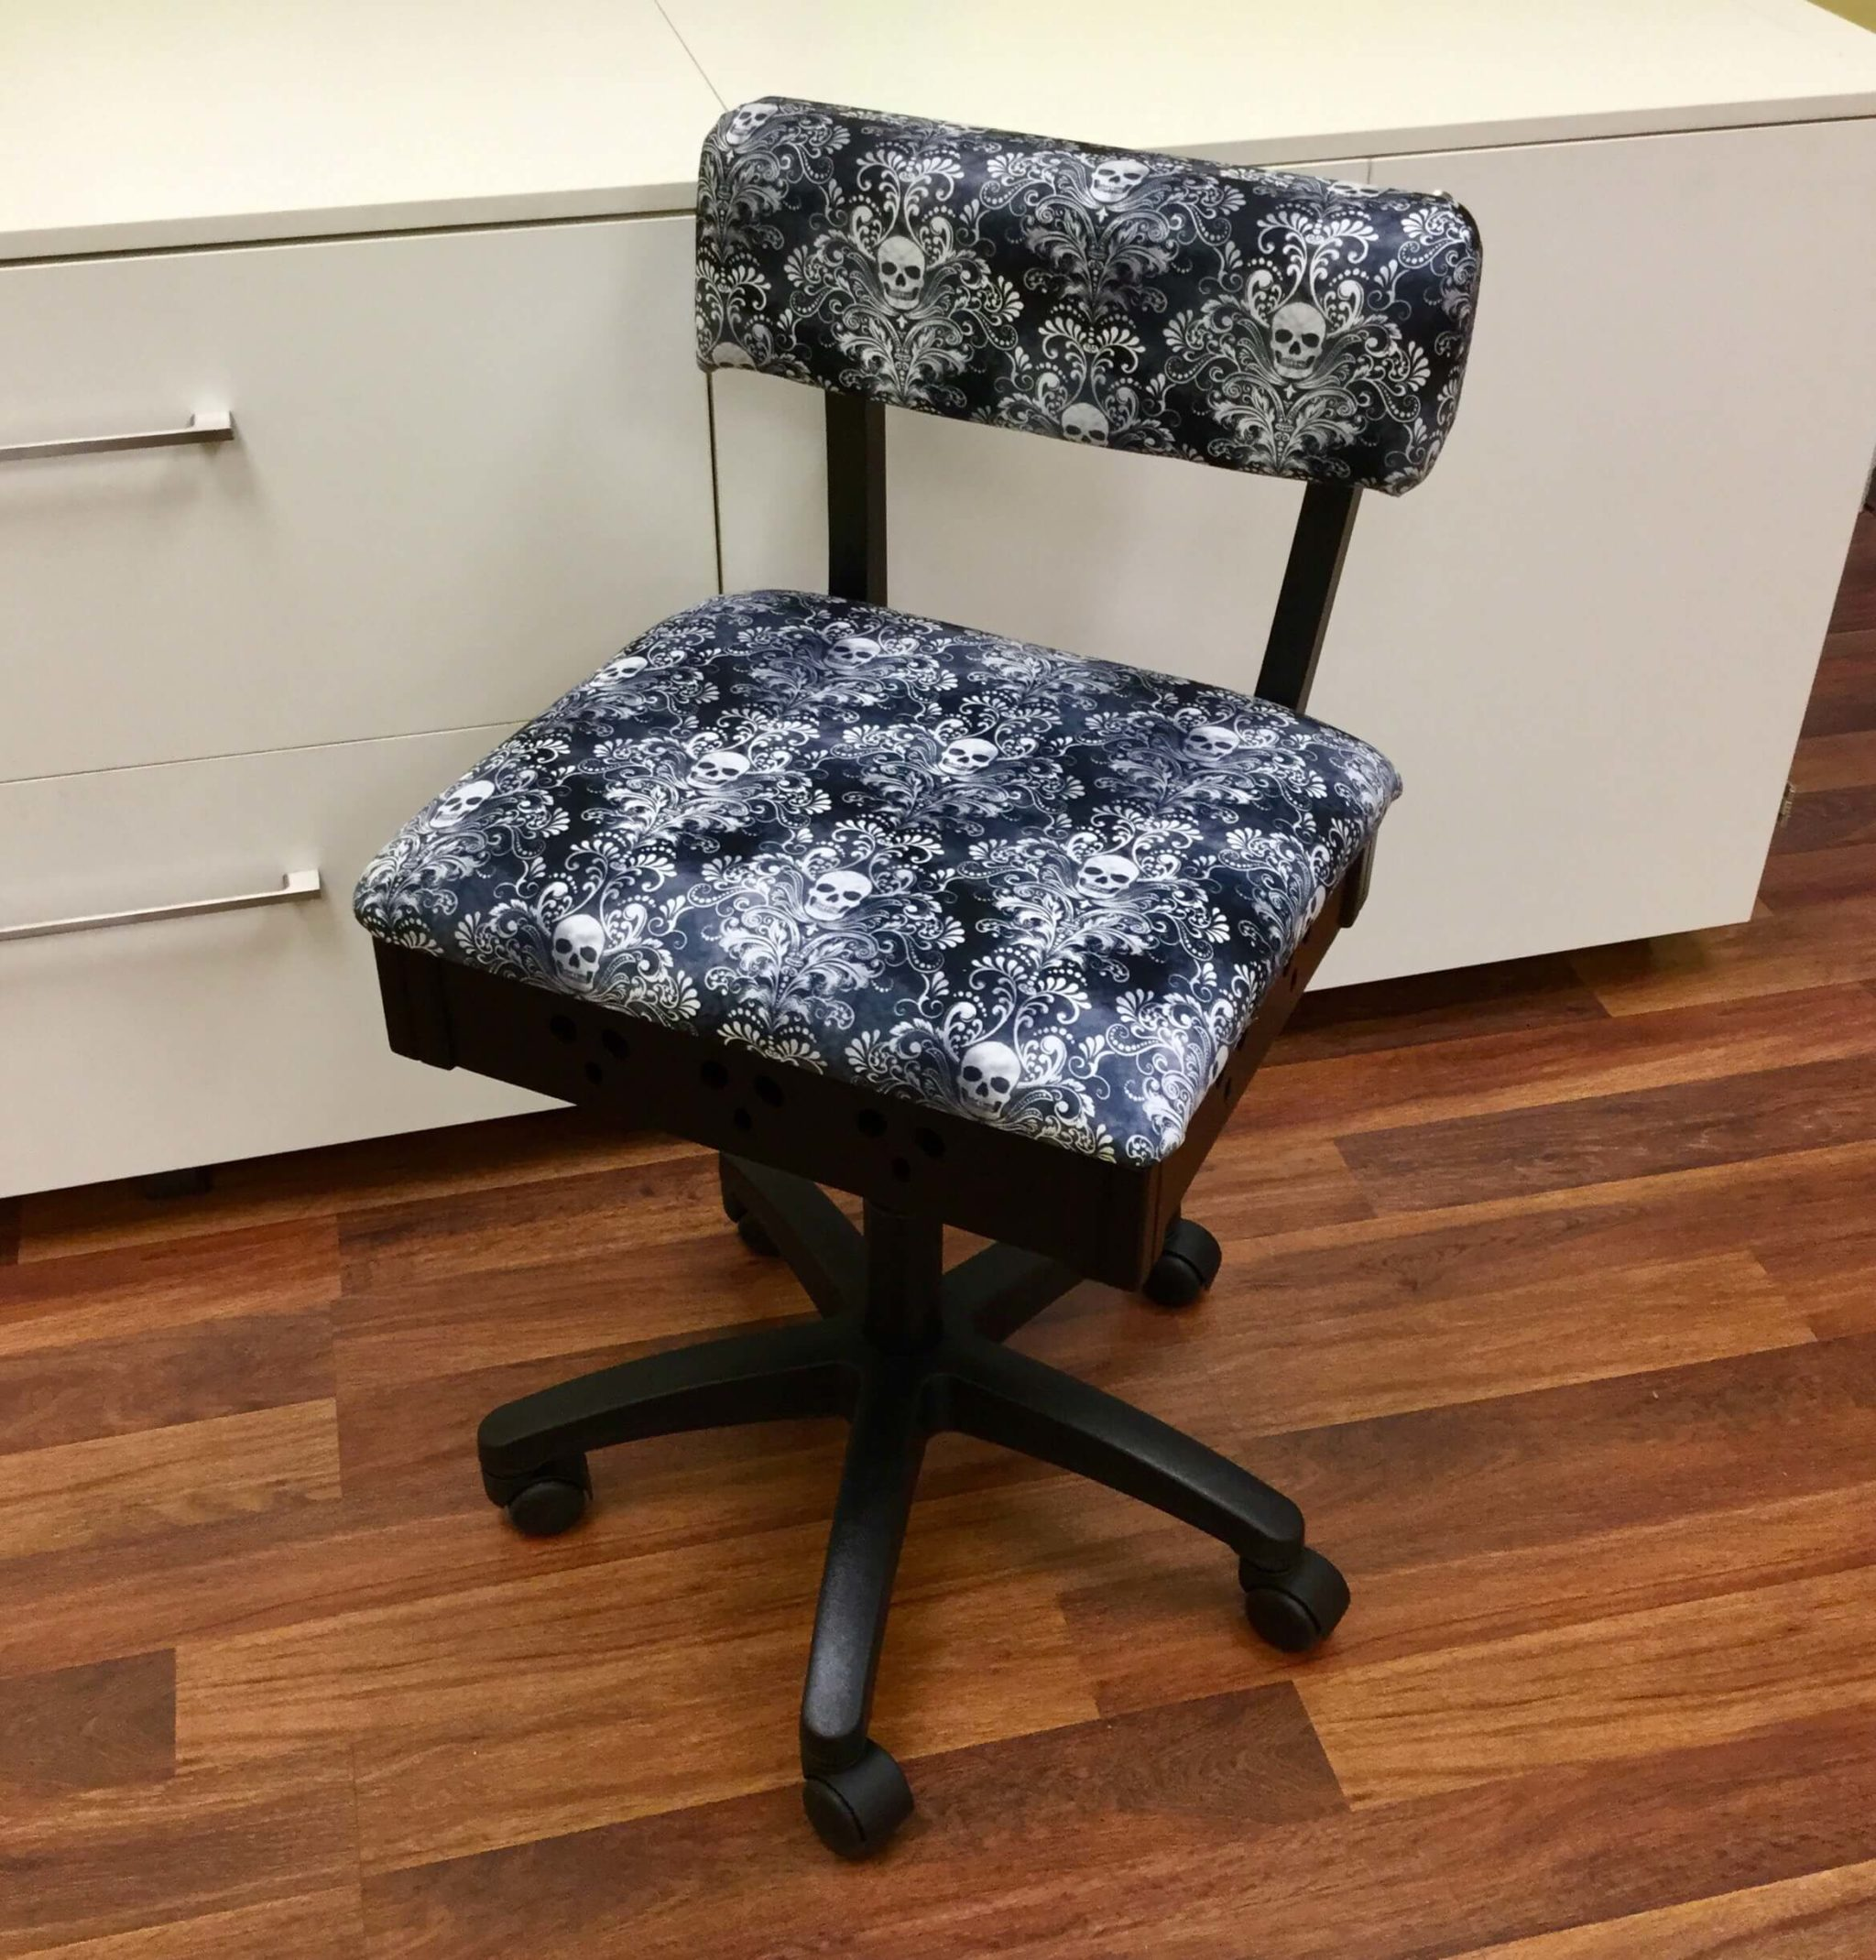 Sewing Chairs Hydraulic Sewing Chair Wicked Cosplay Arrow Sewing